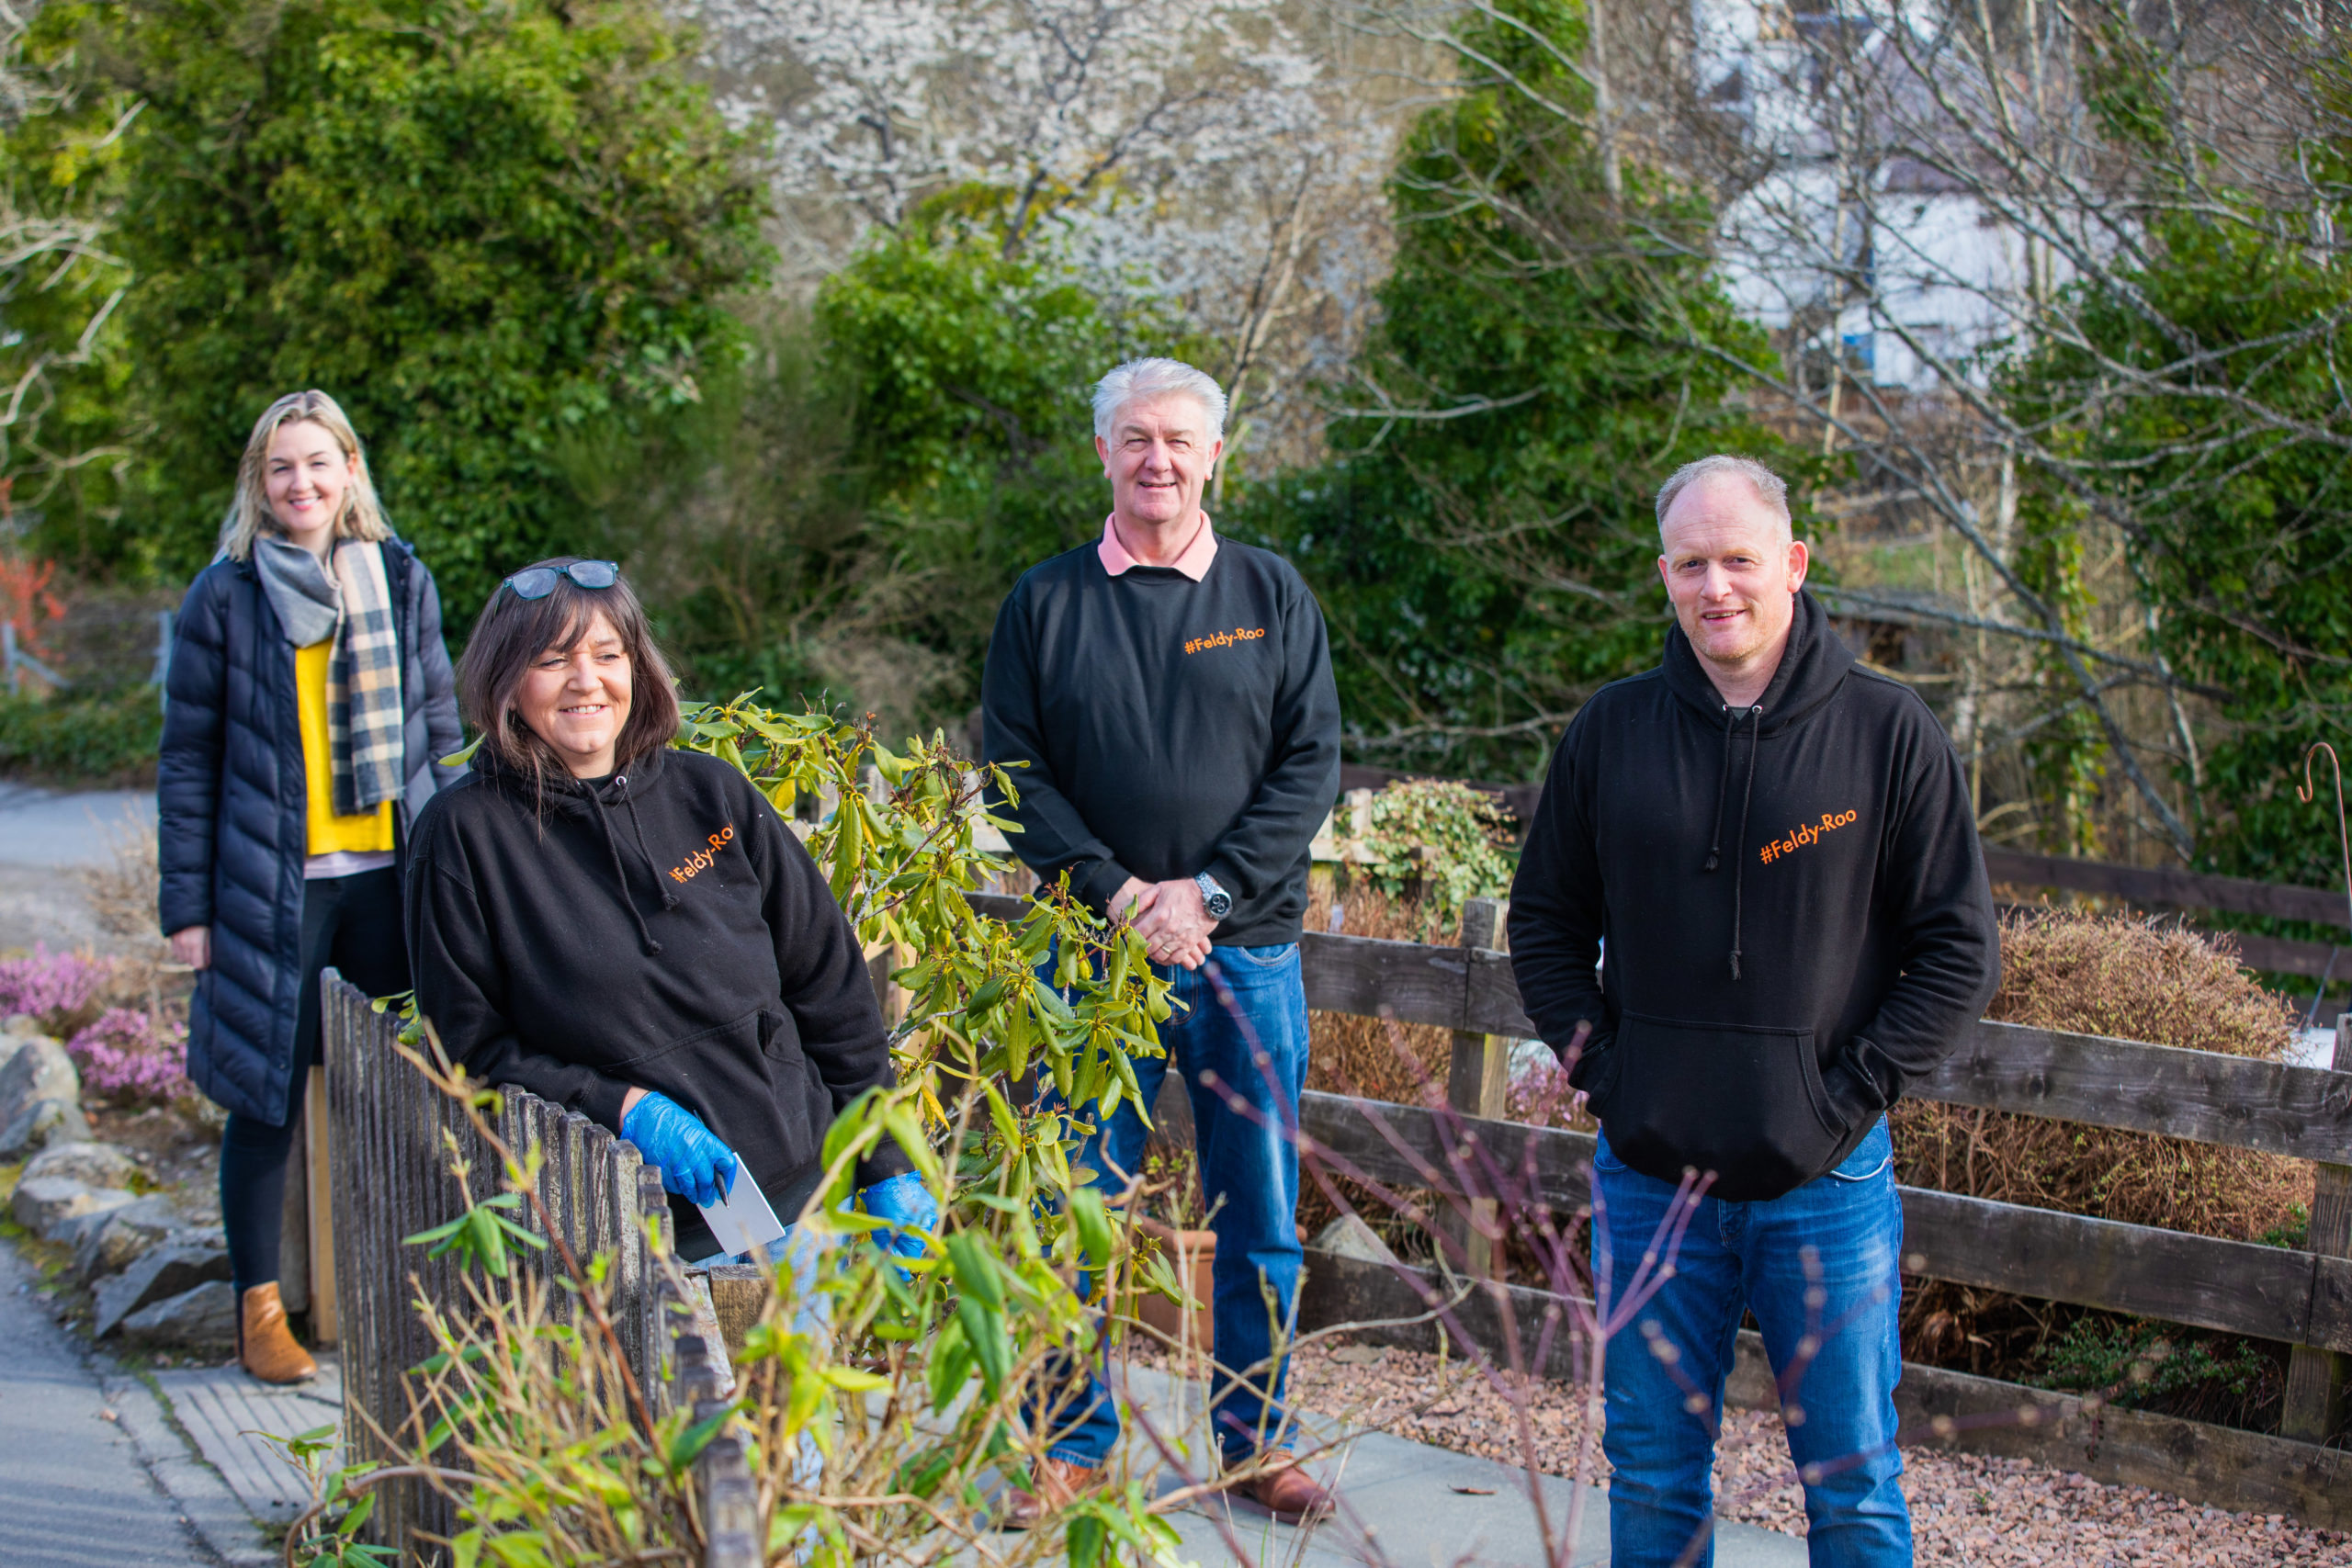 Sam Leighton, Julie Roy, Gordon Leighton and Gavin Price of Feldy Roo. Picture: Steve MacDougall.